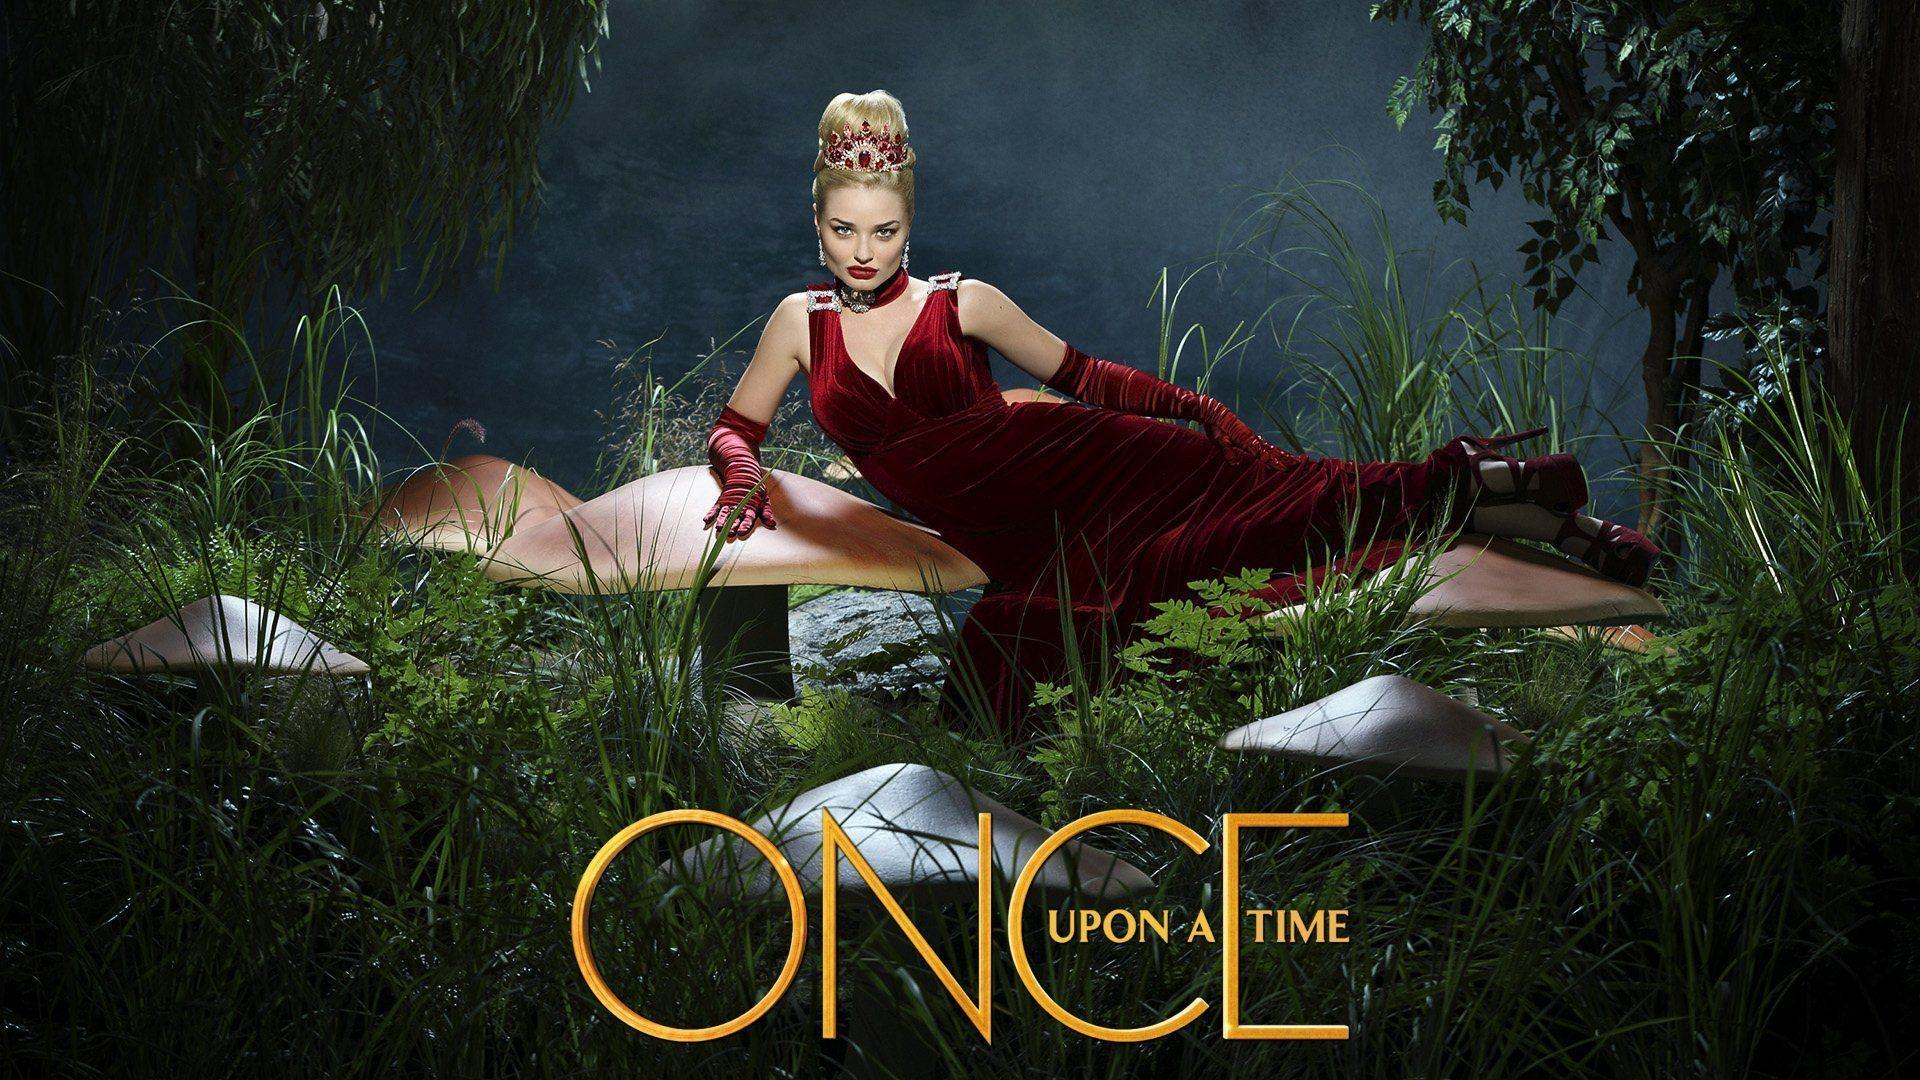 95 Once Upon A Time Season 7 Wallpapers On Wallpapersafari